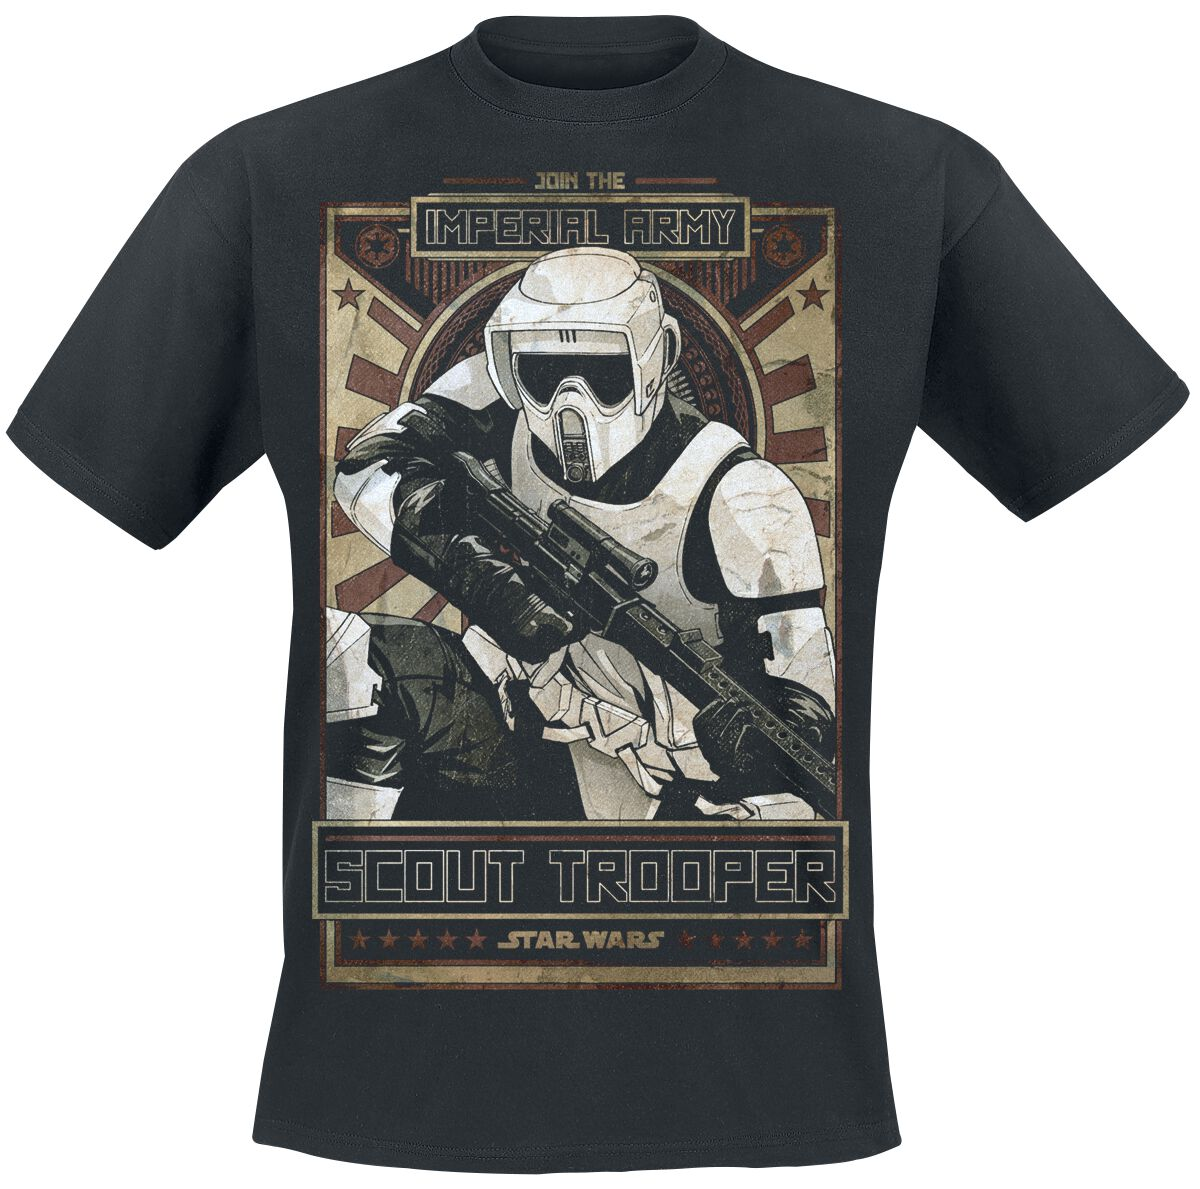 Image of   Star Wars Episode 6 - Die Rückkehr der Jedi Ritter - Imperial Army T-Shirt sort